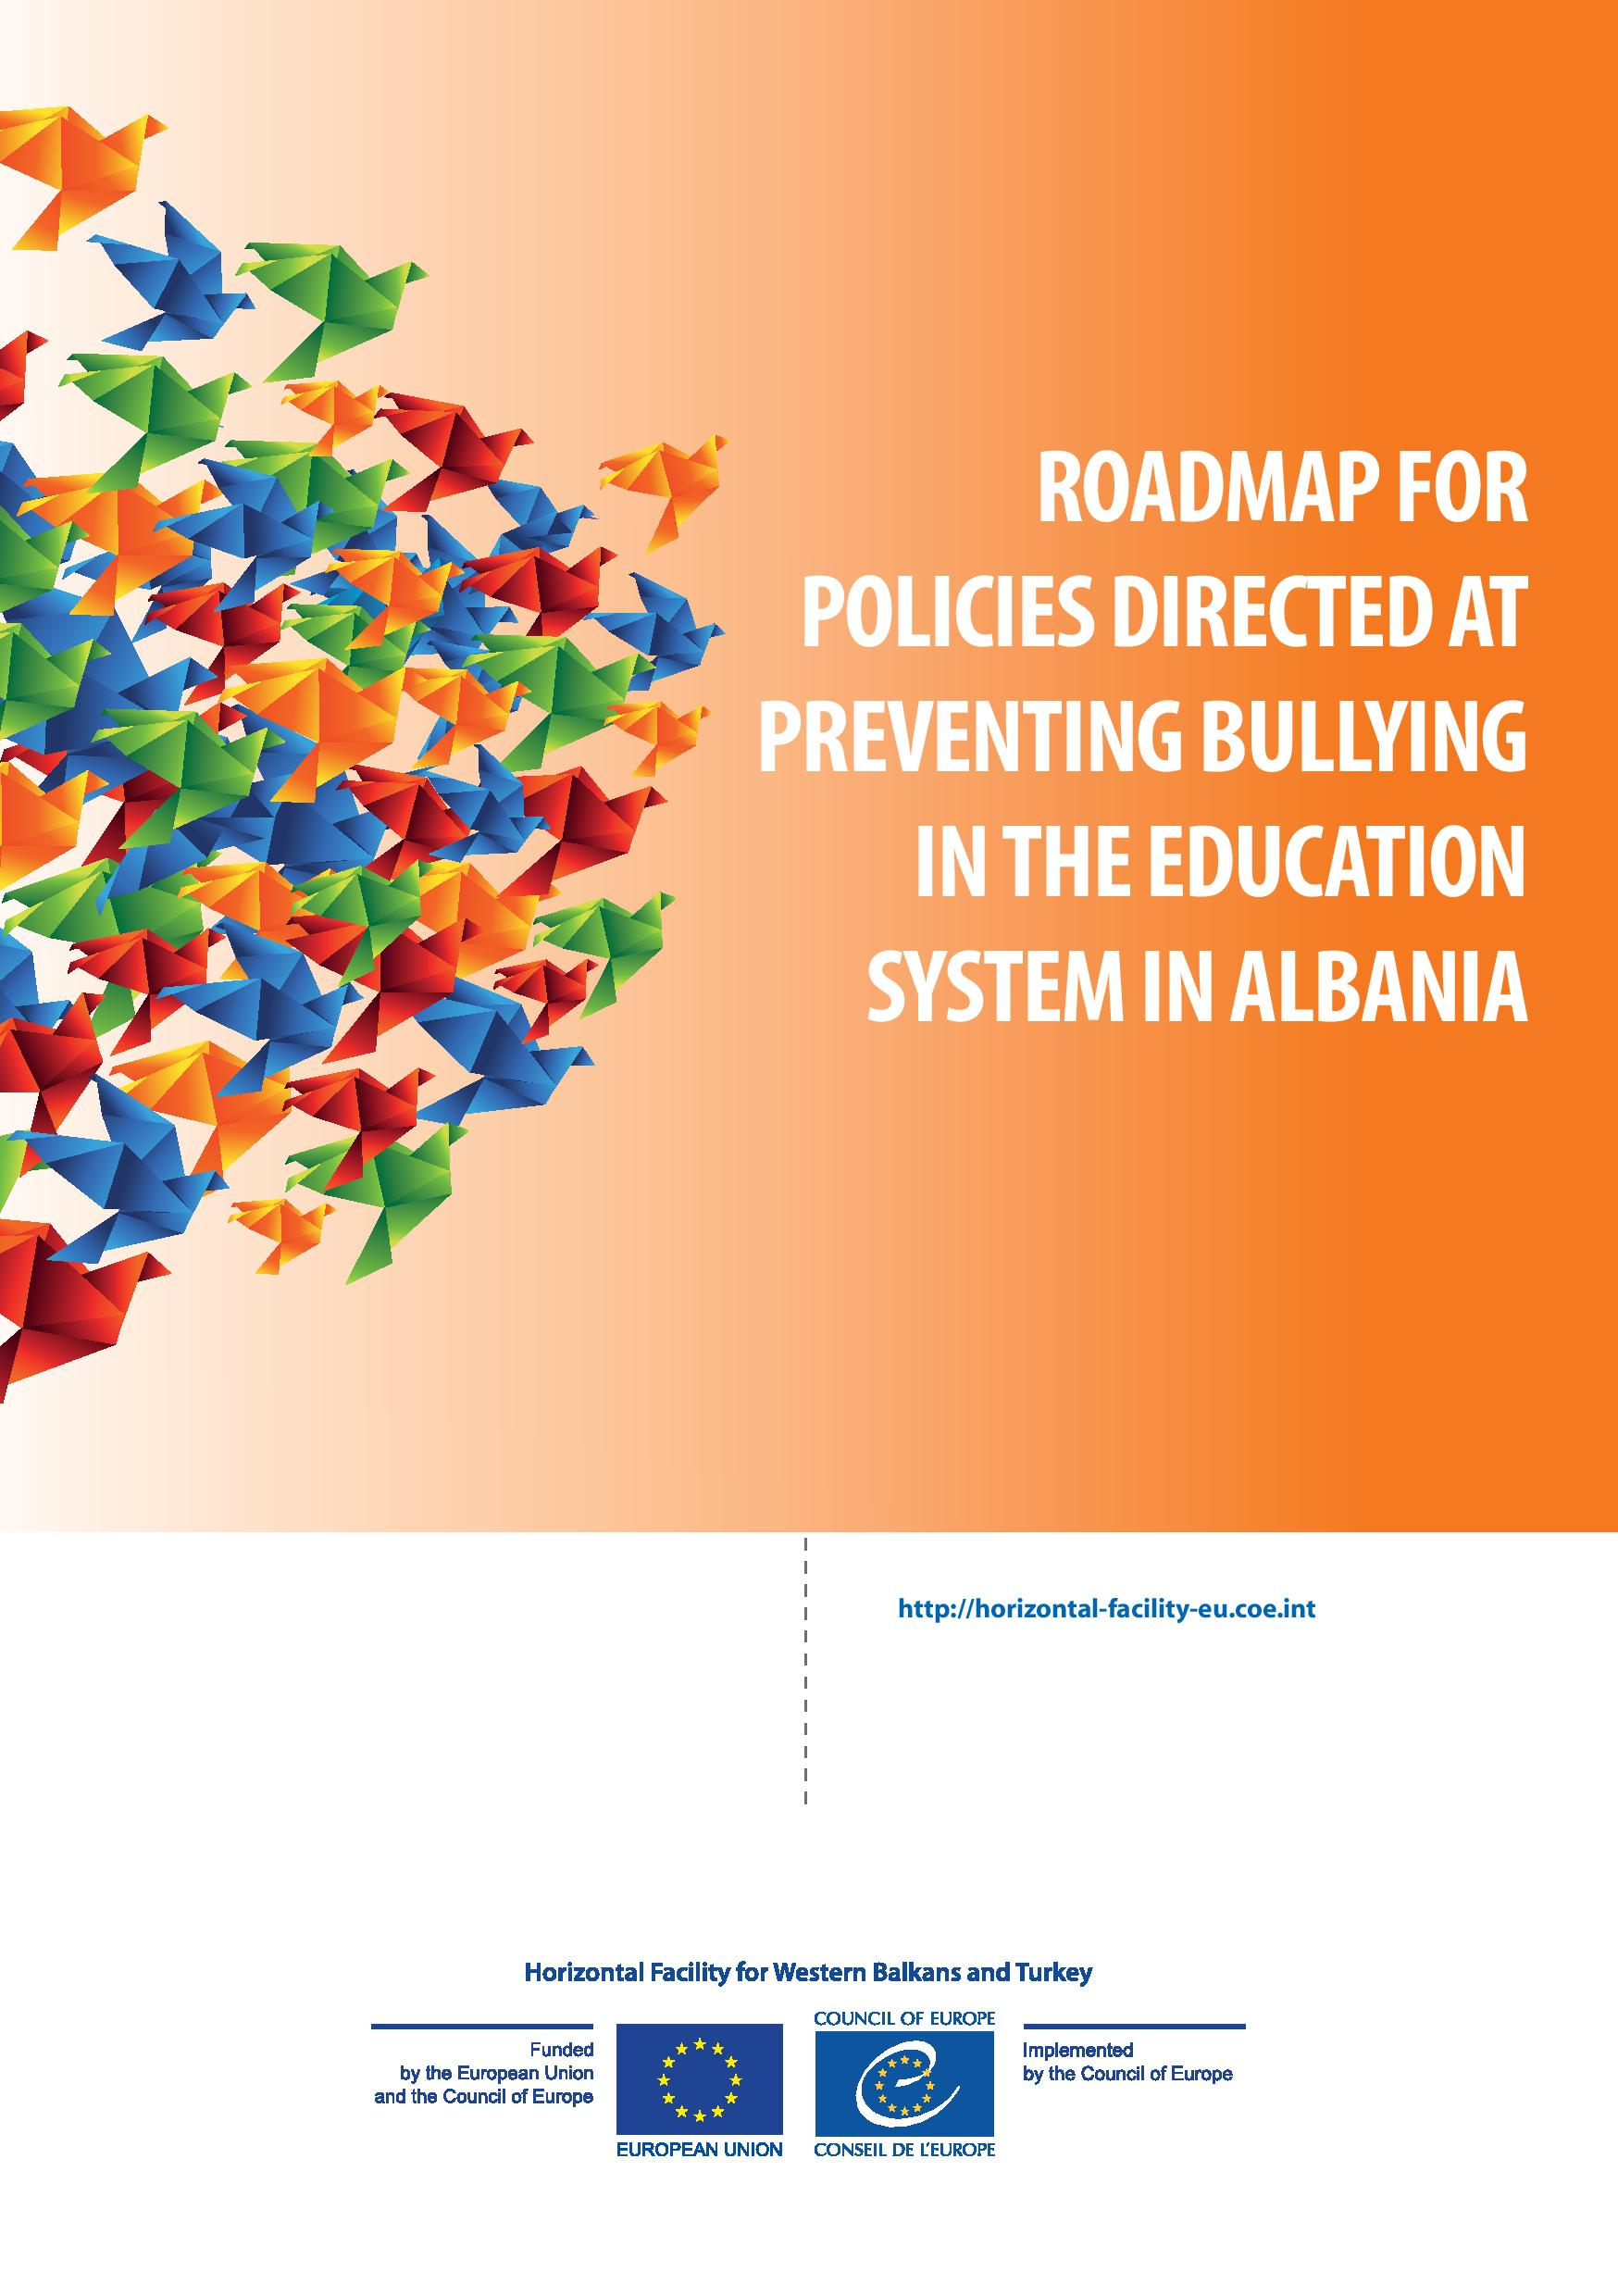 Roadmap for Policies Directed at Preventing Bullying in the Education System in Albania